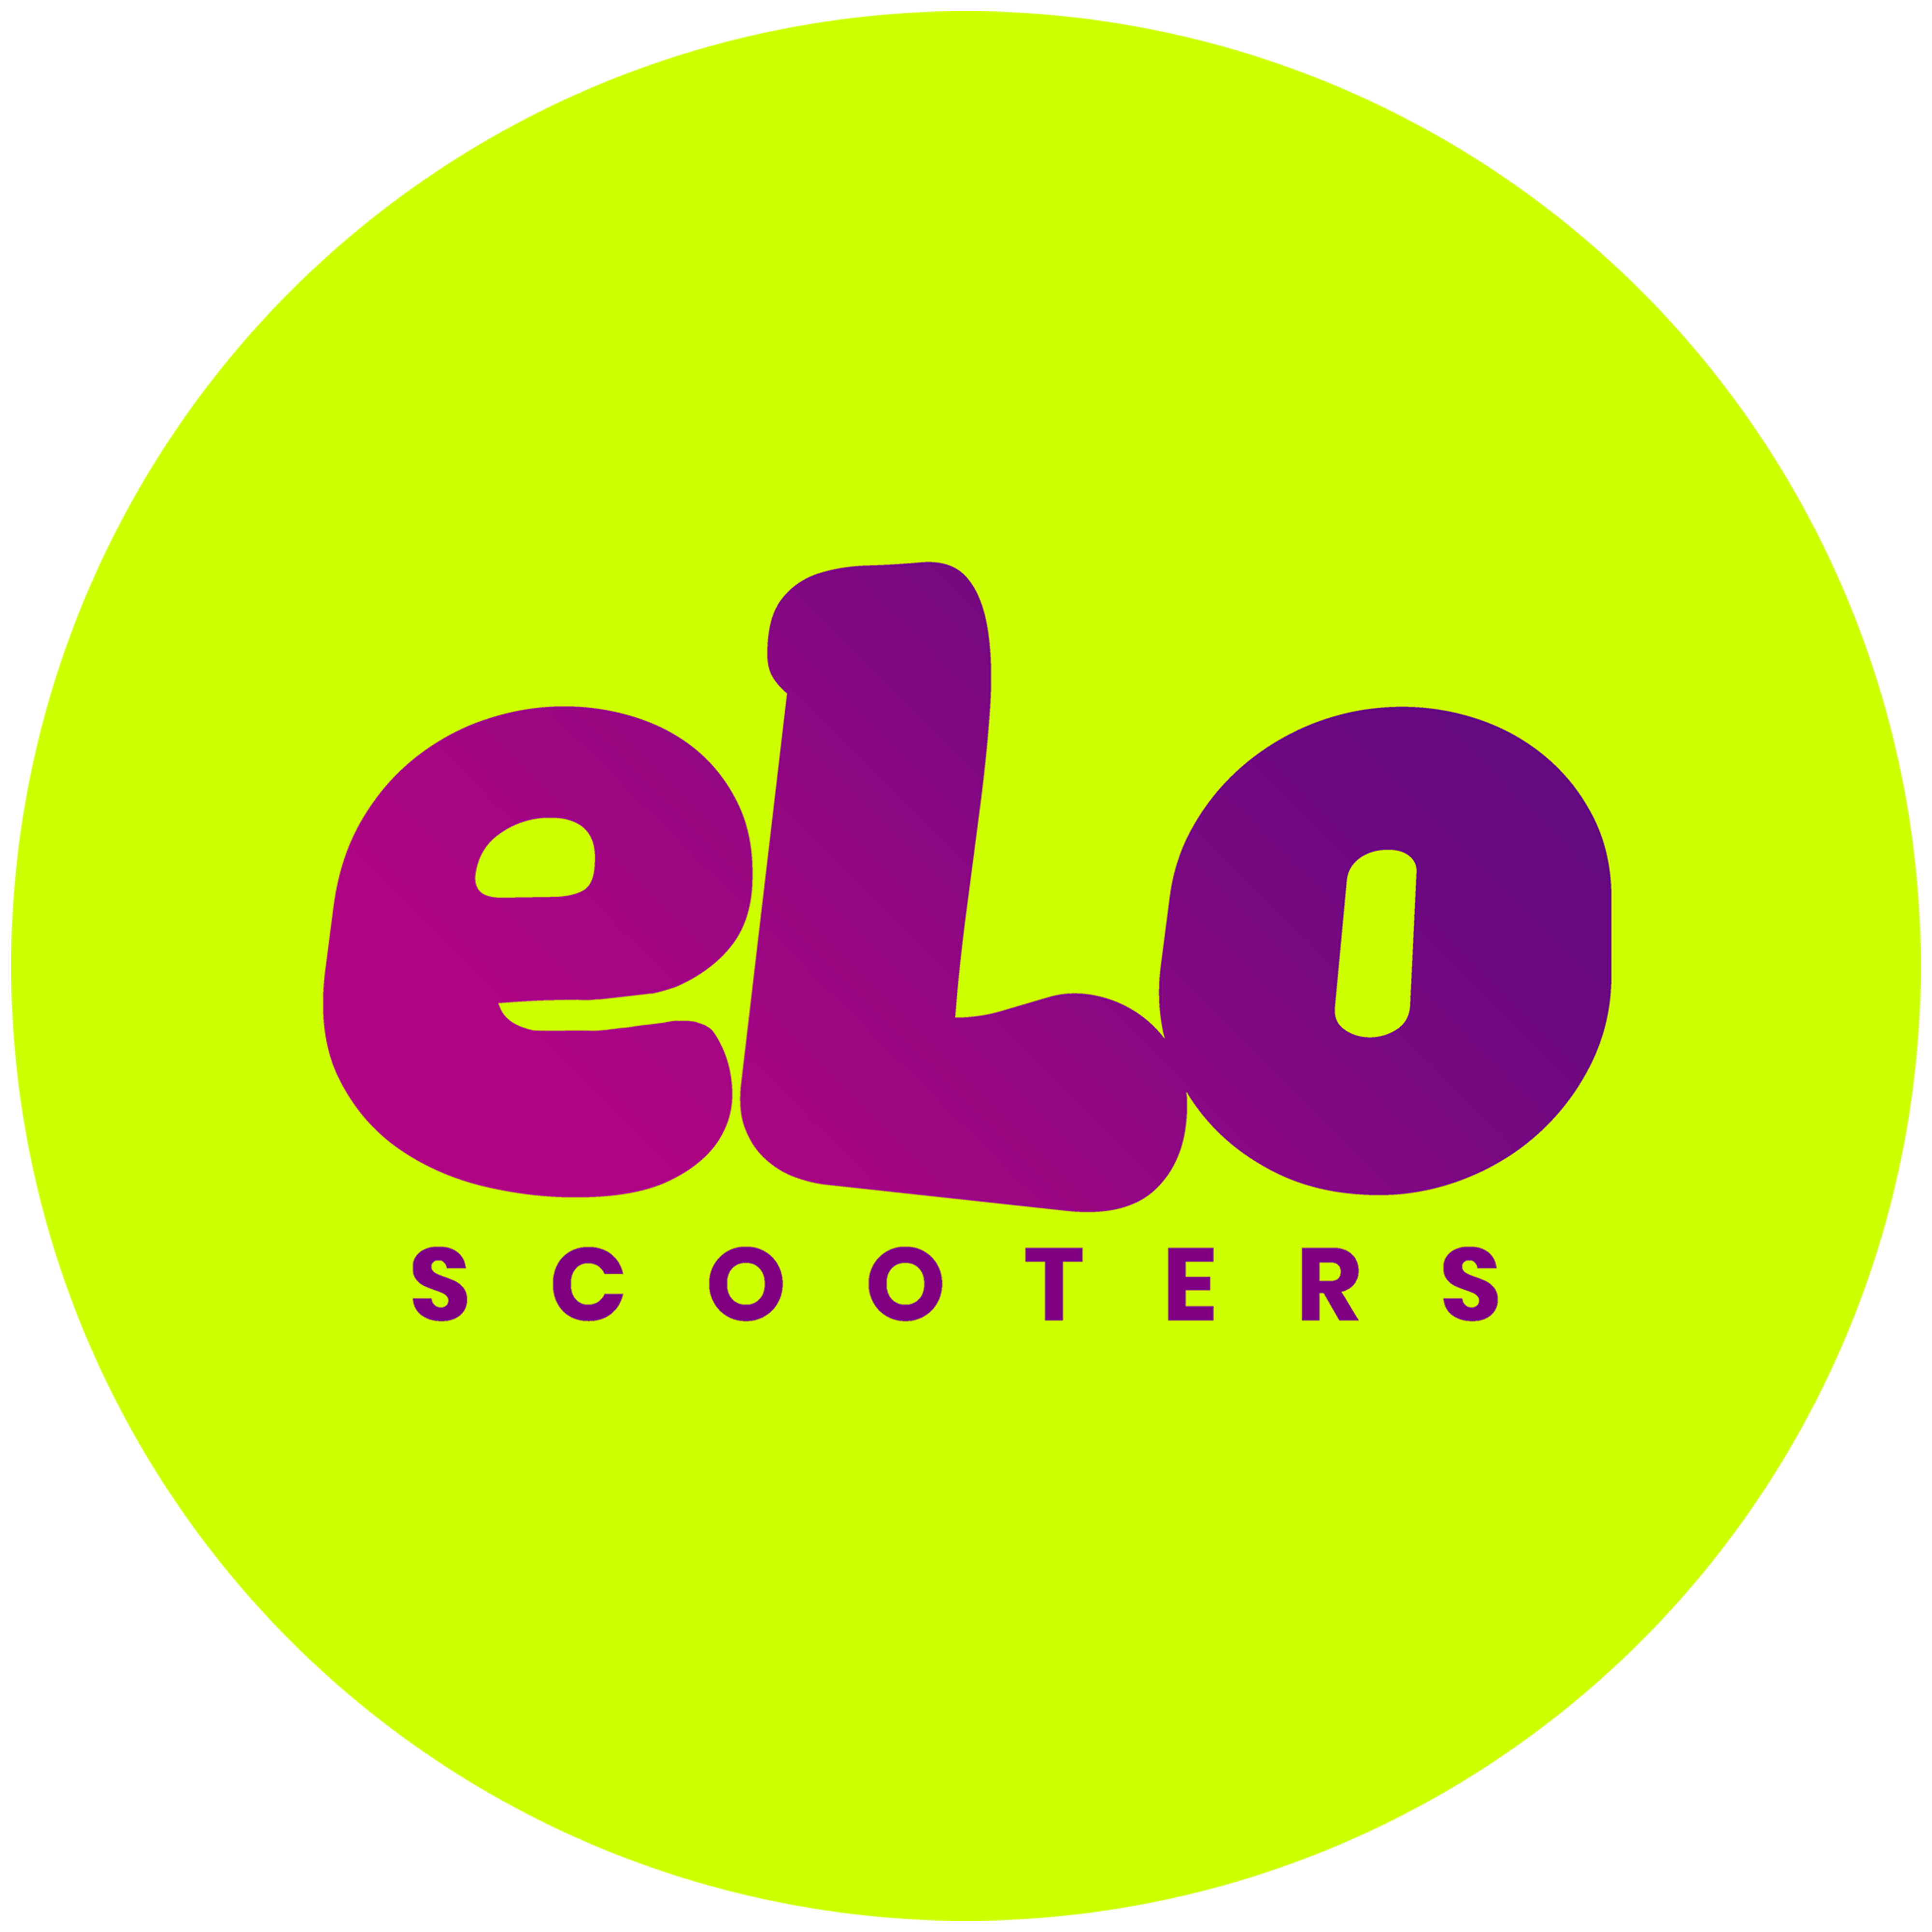 ELO Scooters – freedom of movement